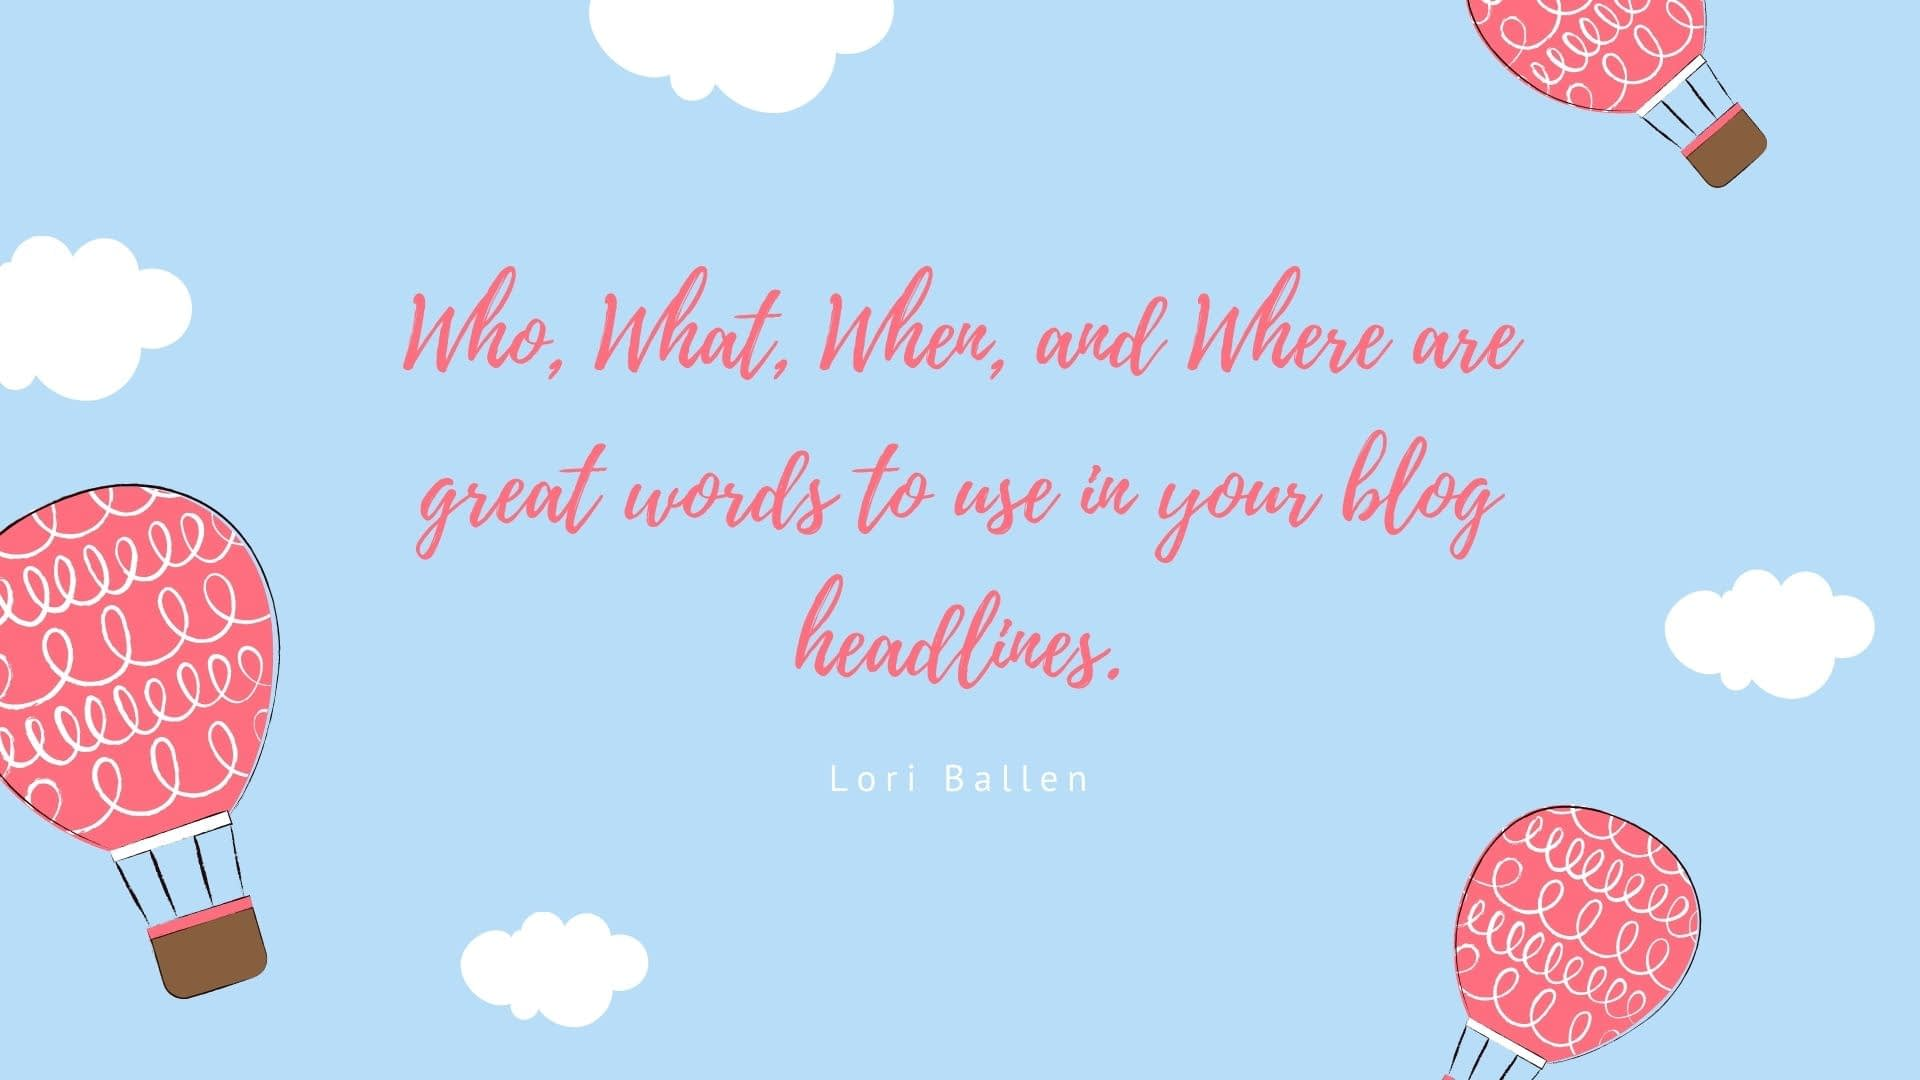 Who, What, When, and Where are great words to use in your blog headlines.